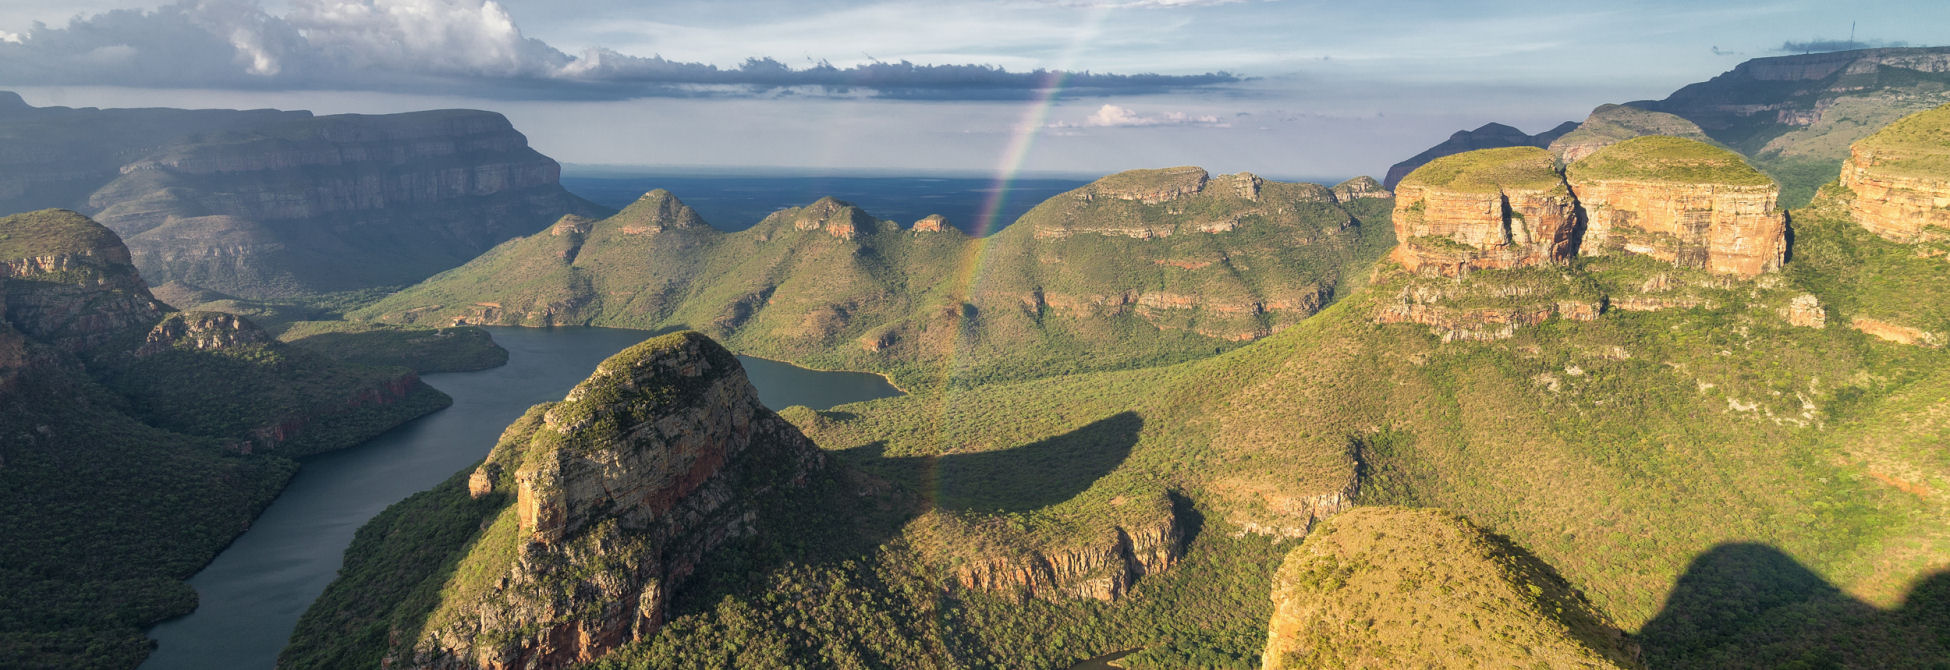 Go Self-Drive South Africa